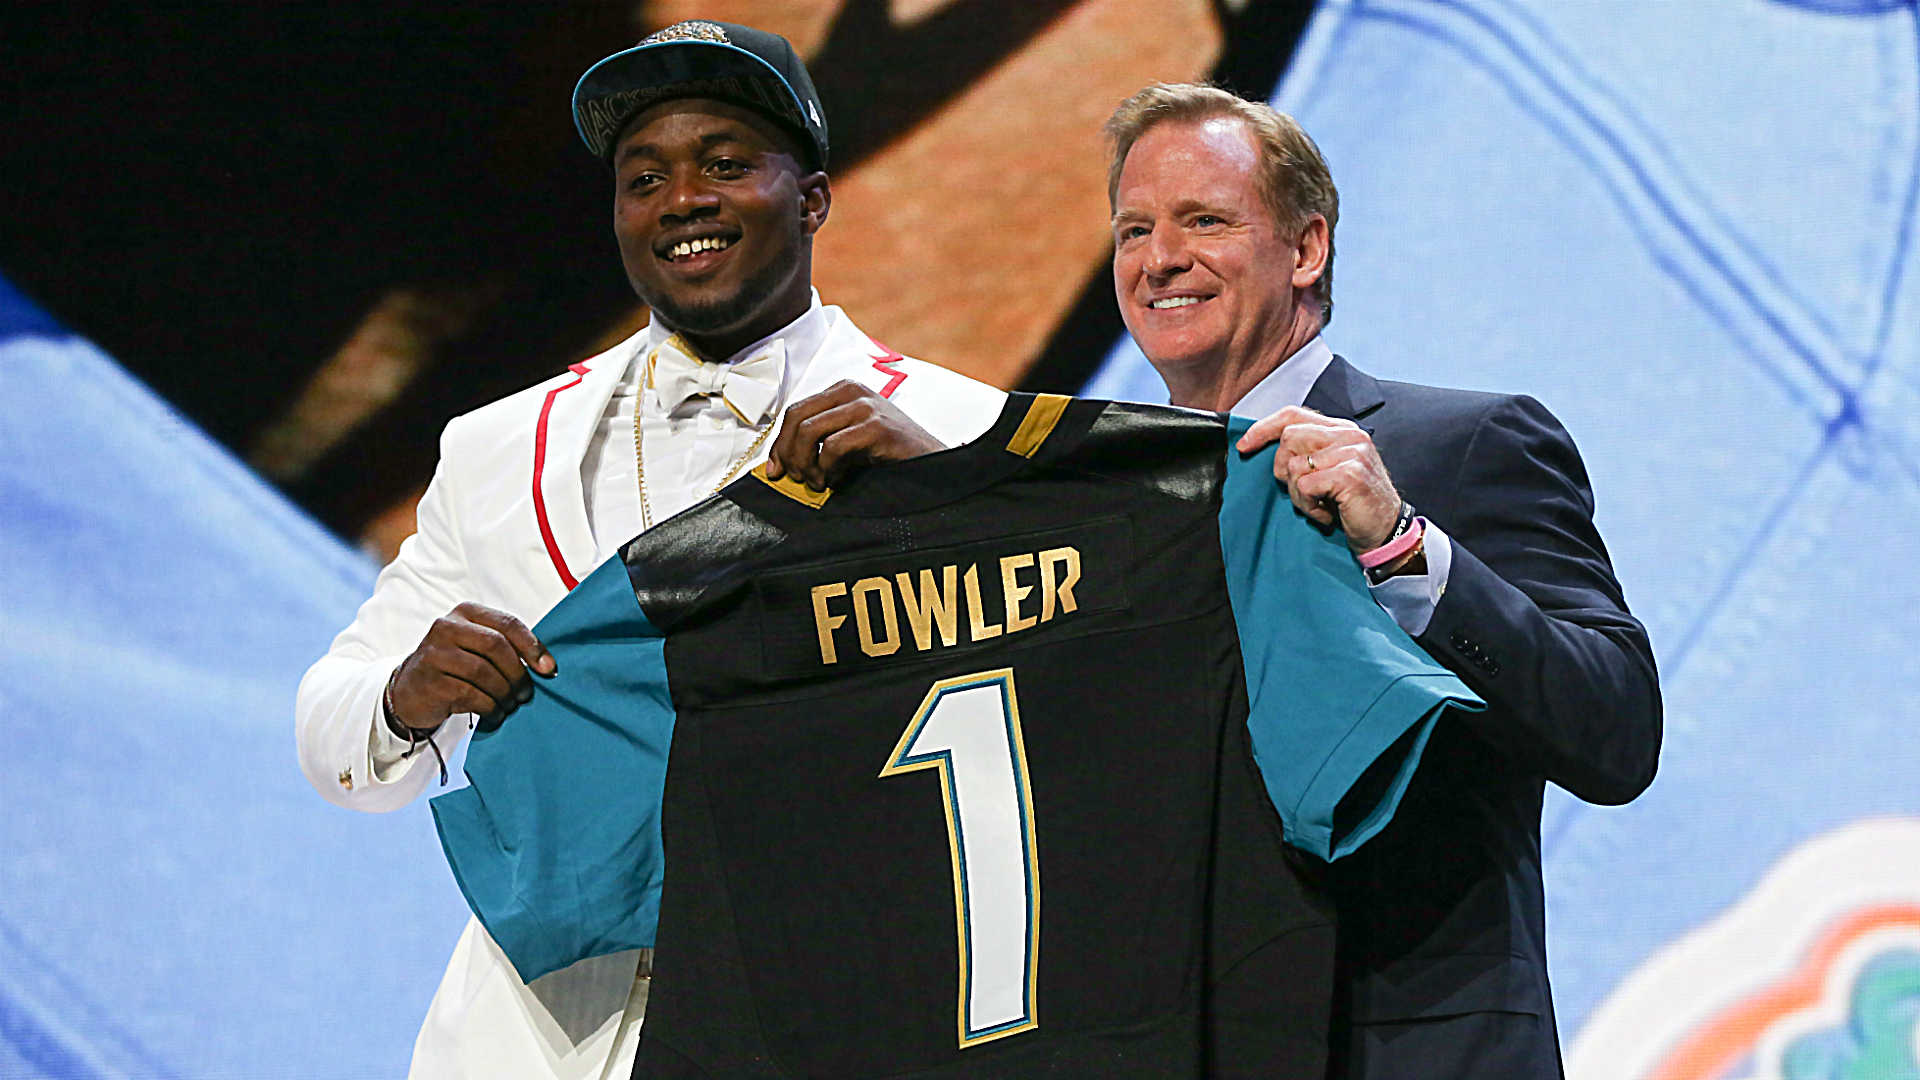 Dante-Fowler-051515-GETTY-FTR.jpg